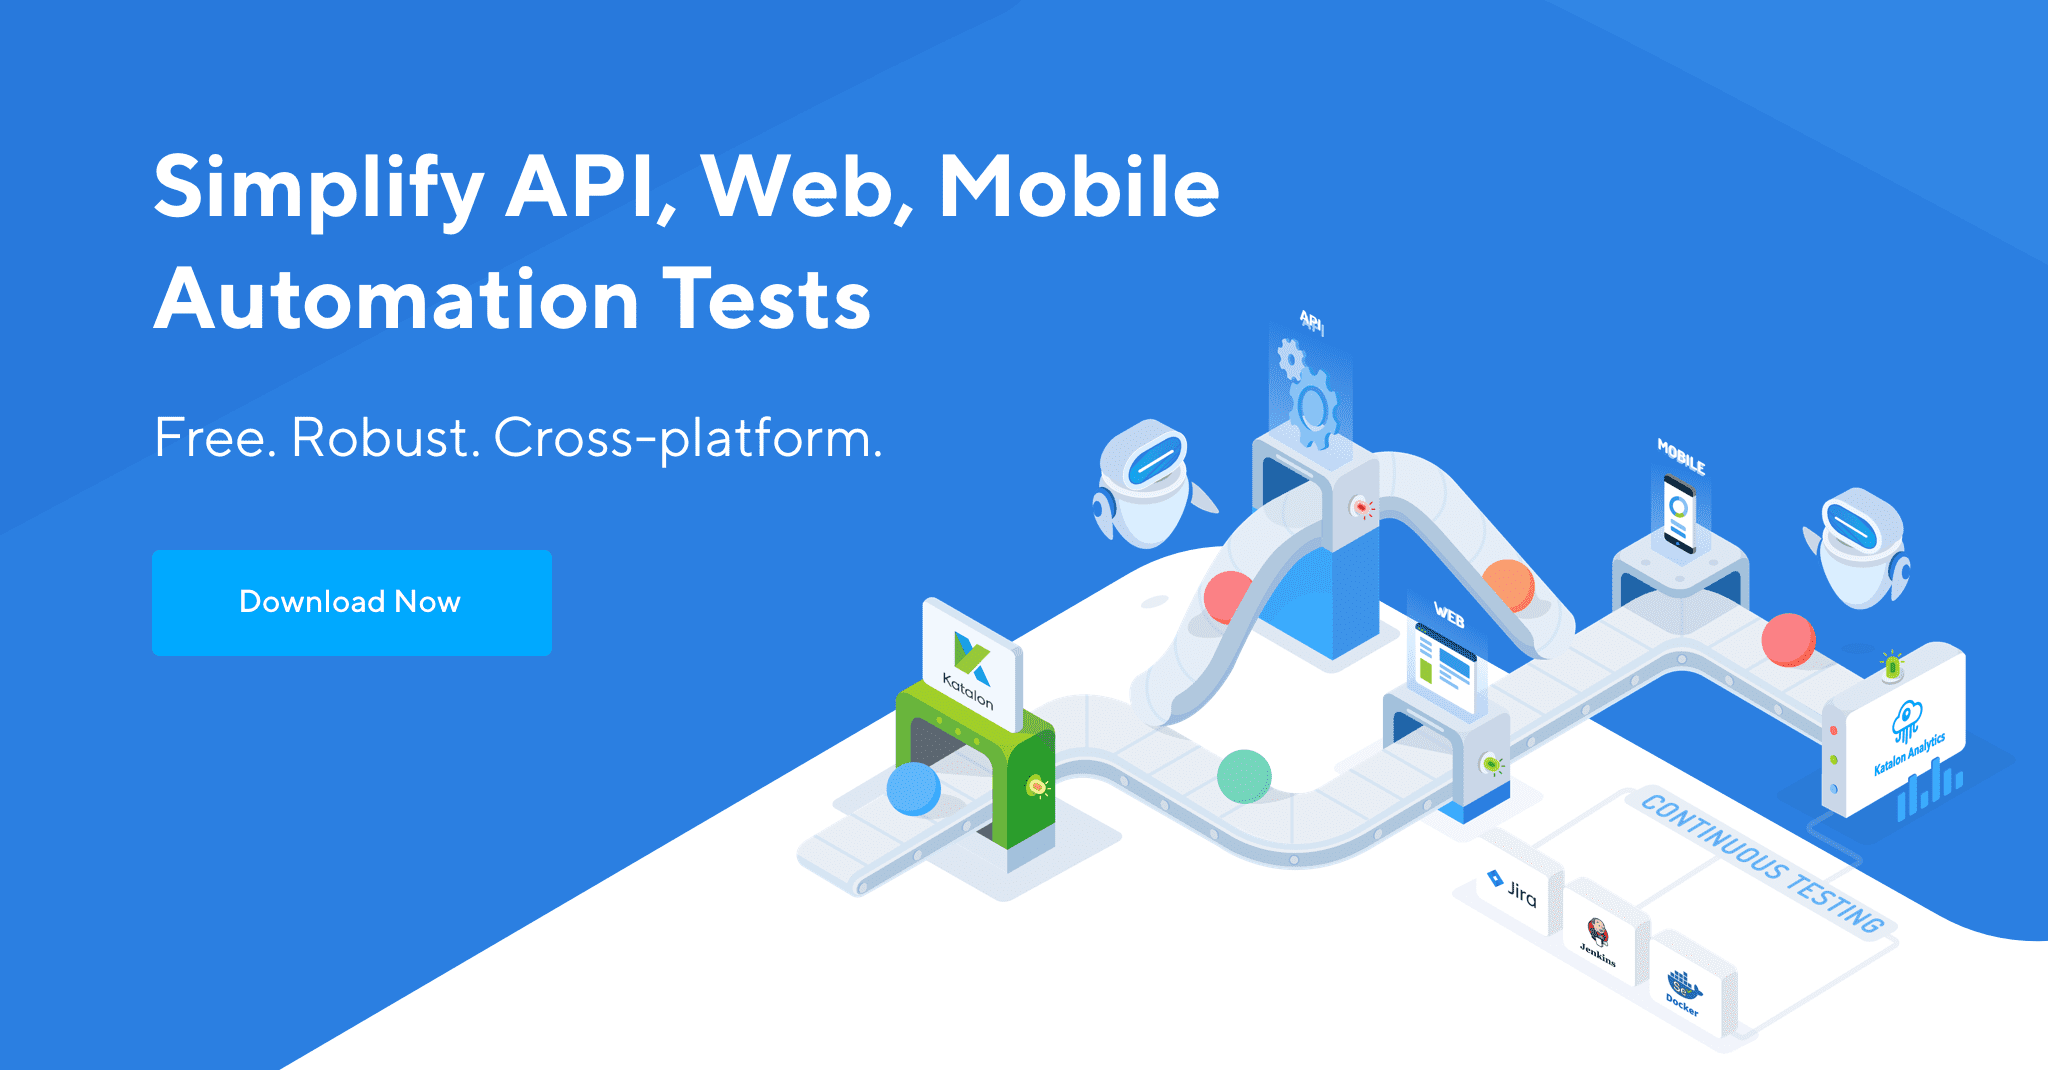 Katalon Studio: Simplify API, Web, Mobile Automation Tests